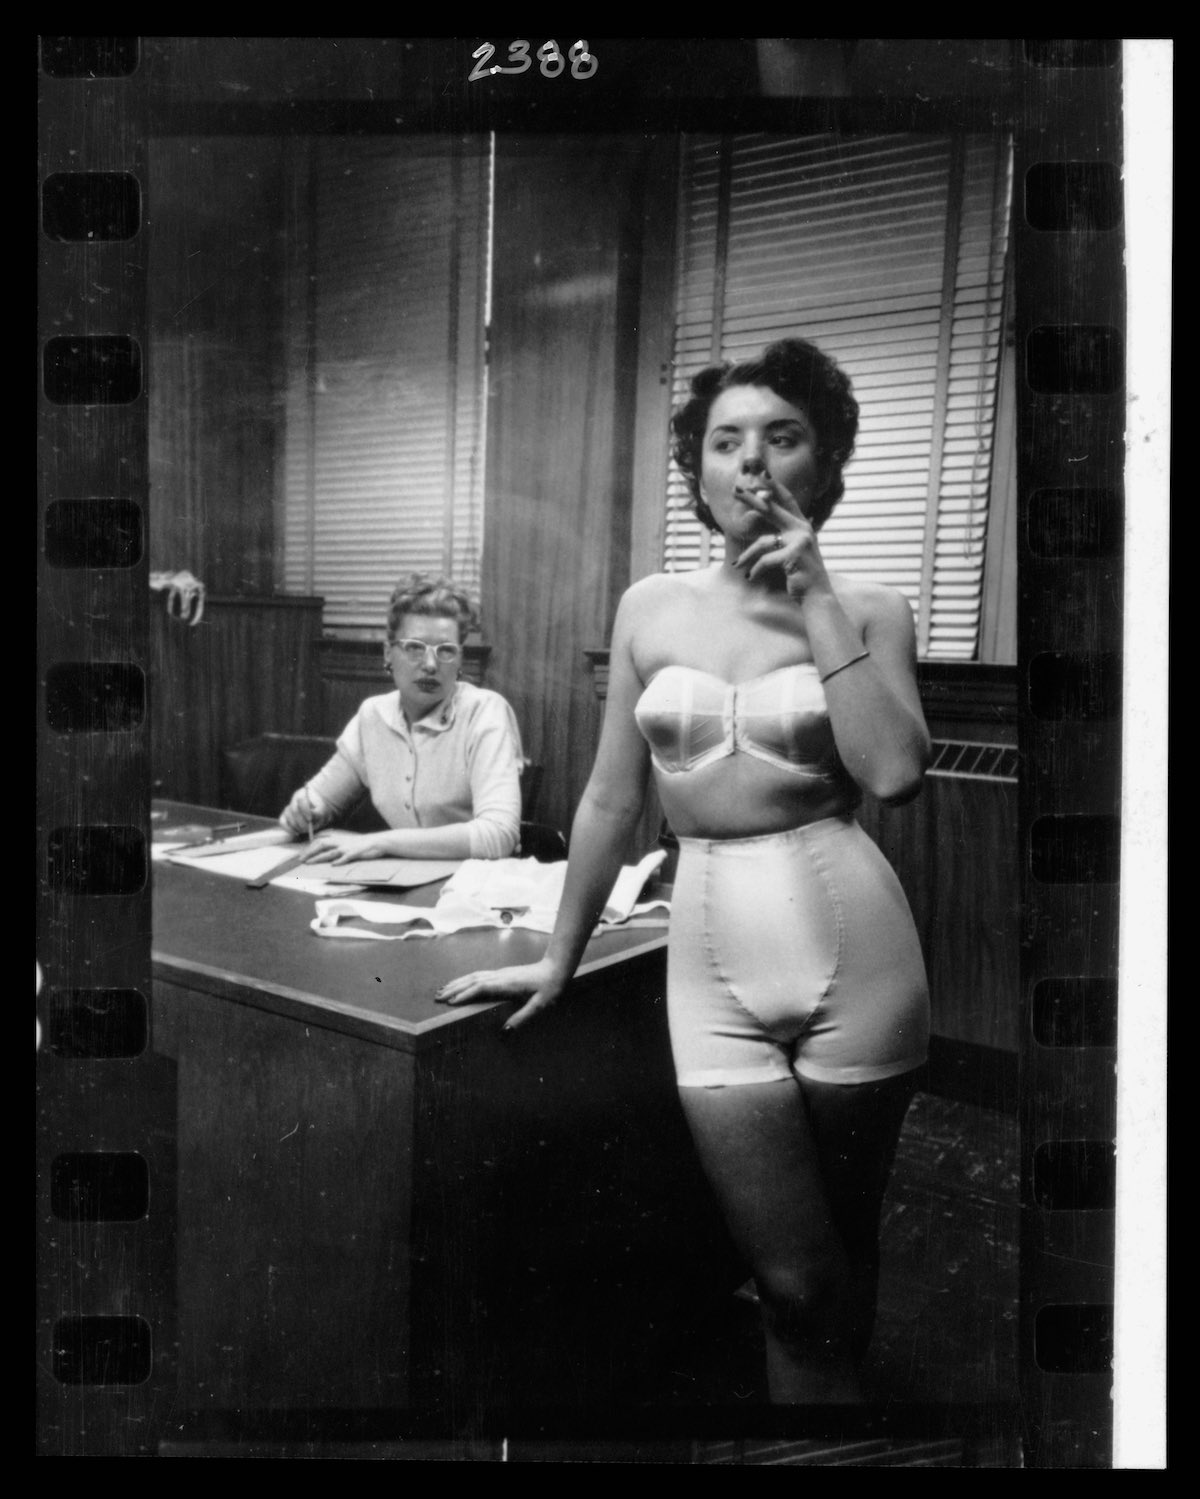 Lingerie model, wearing a girdle and strapless bra, smoking in an office; in the background a woman sits at a desk